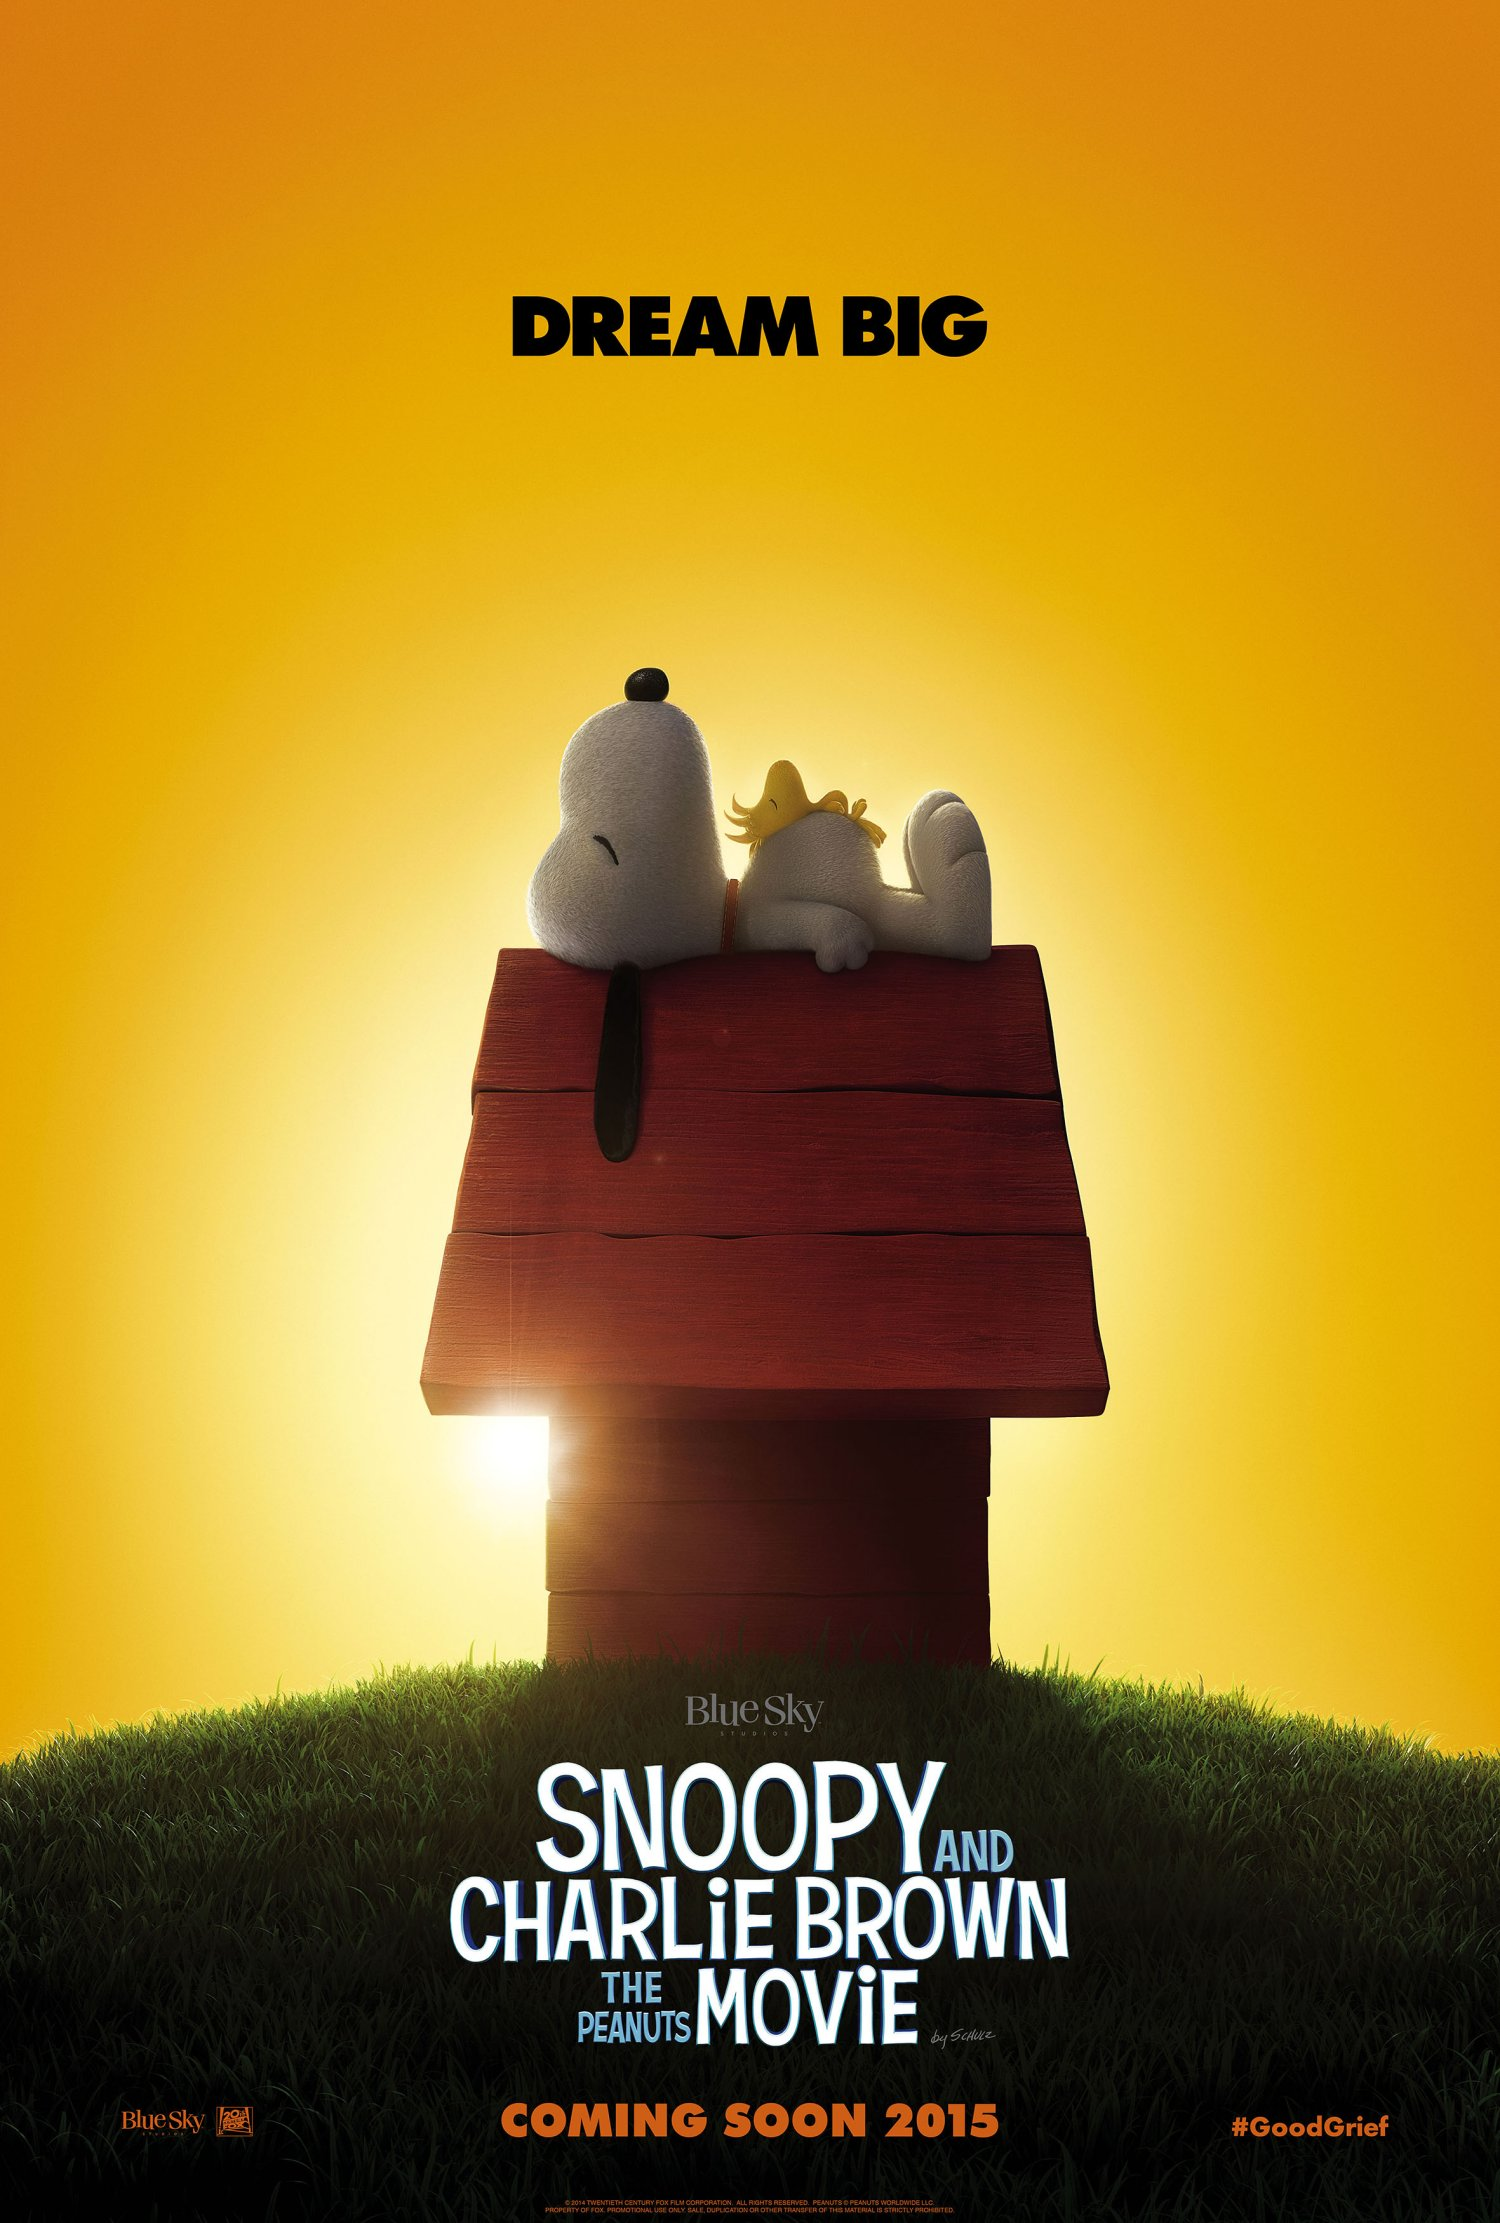 Snoopy and Charlie Brown The Peanuts Movie Teaser poster